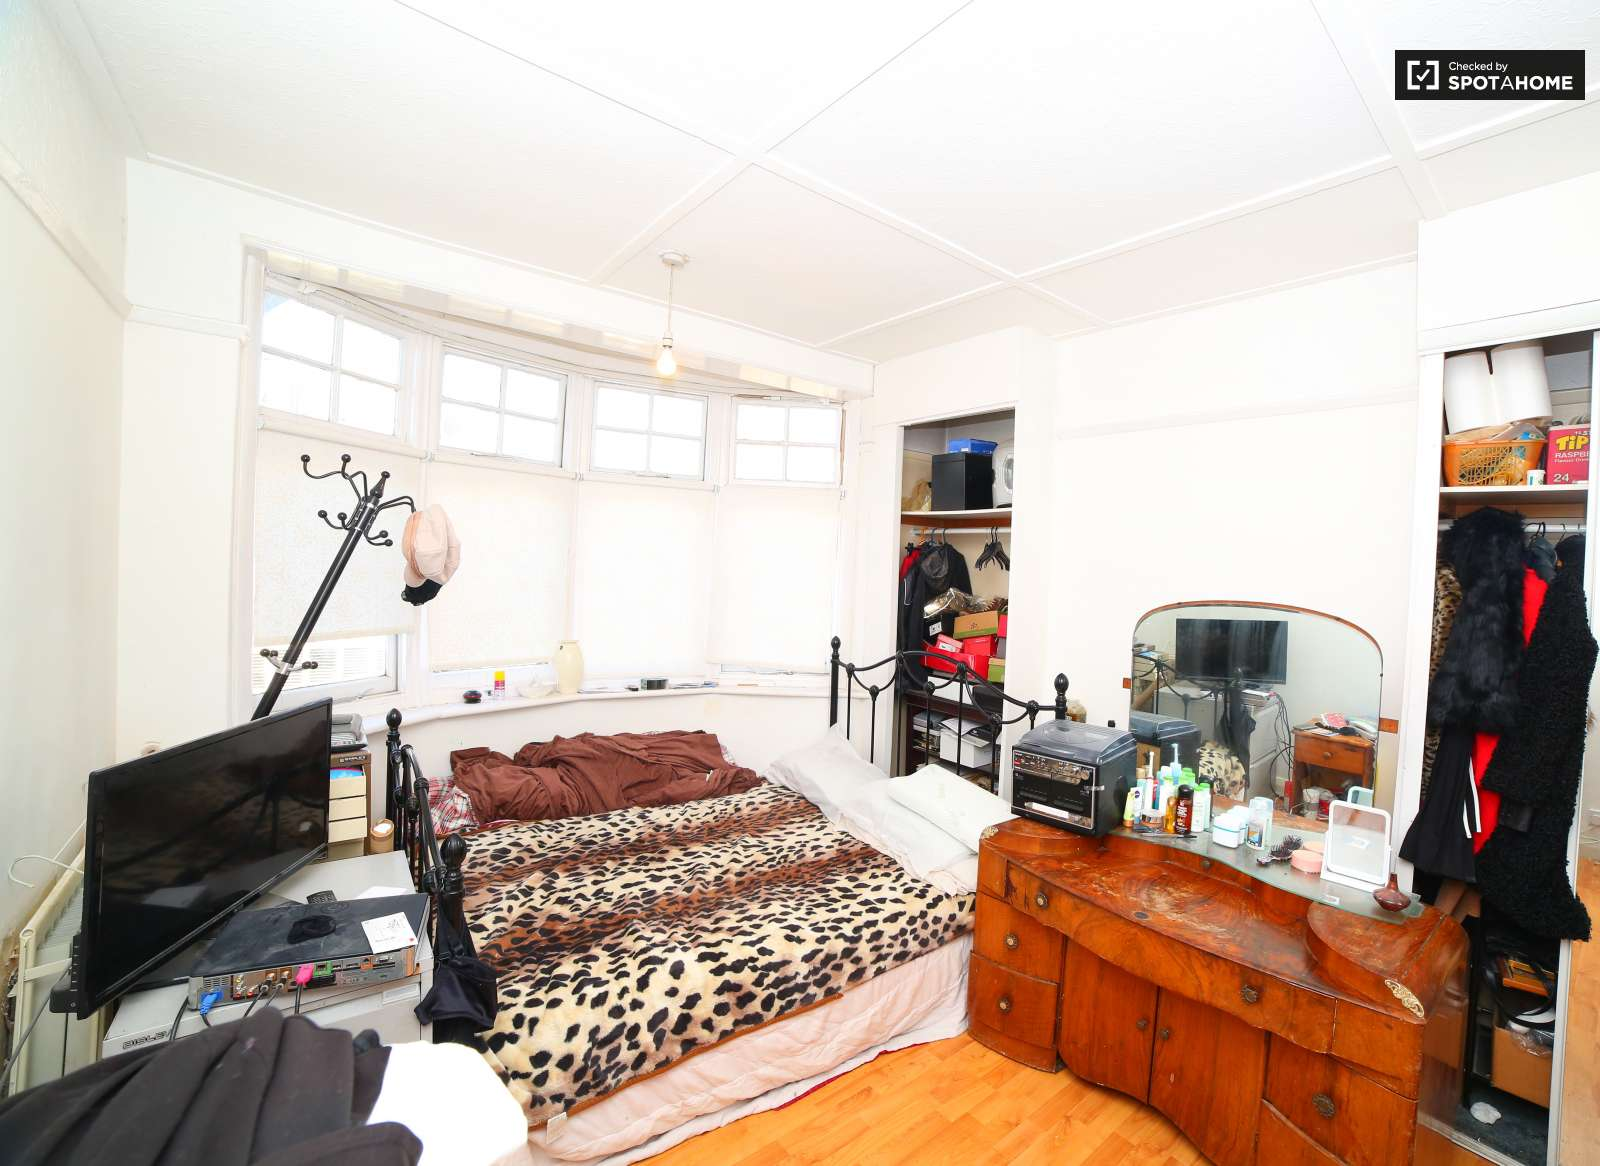 Shared room to rent in 4-bedroom house with garden in Brixton